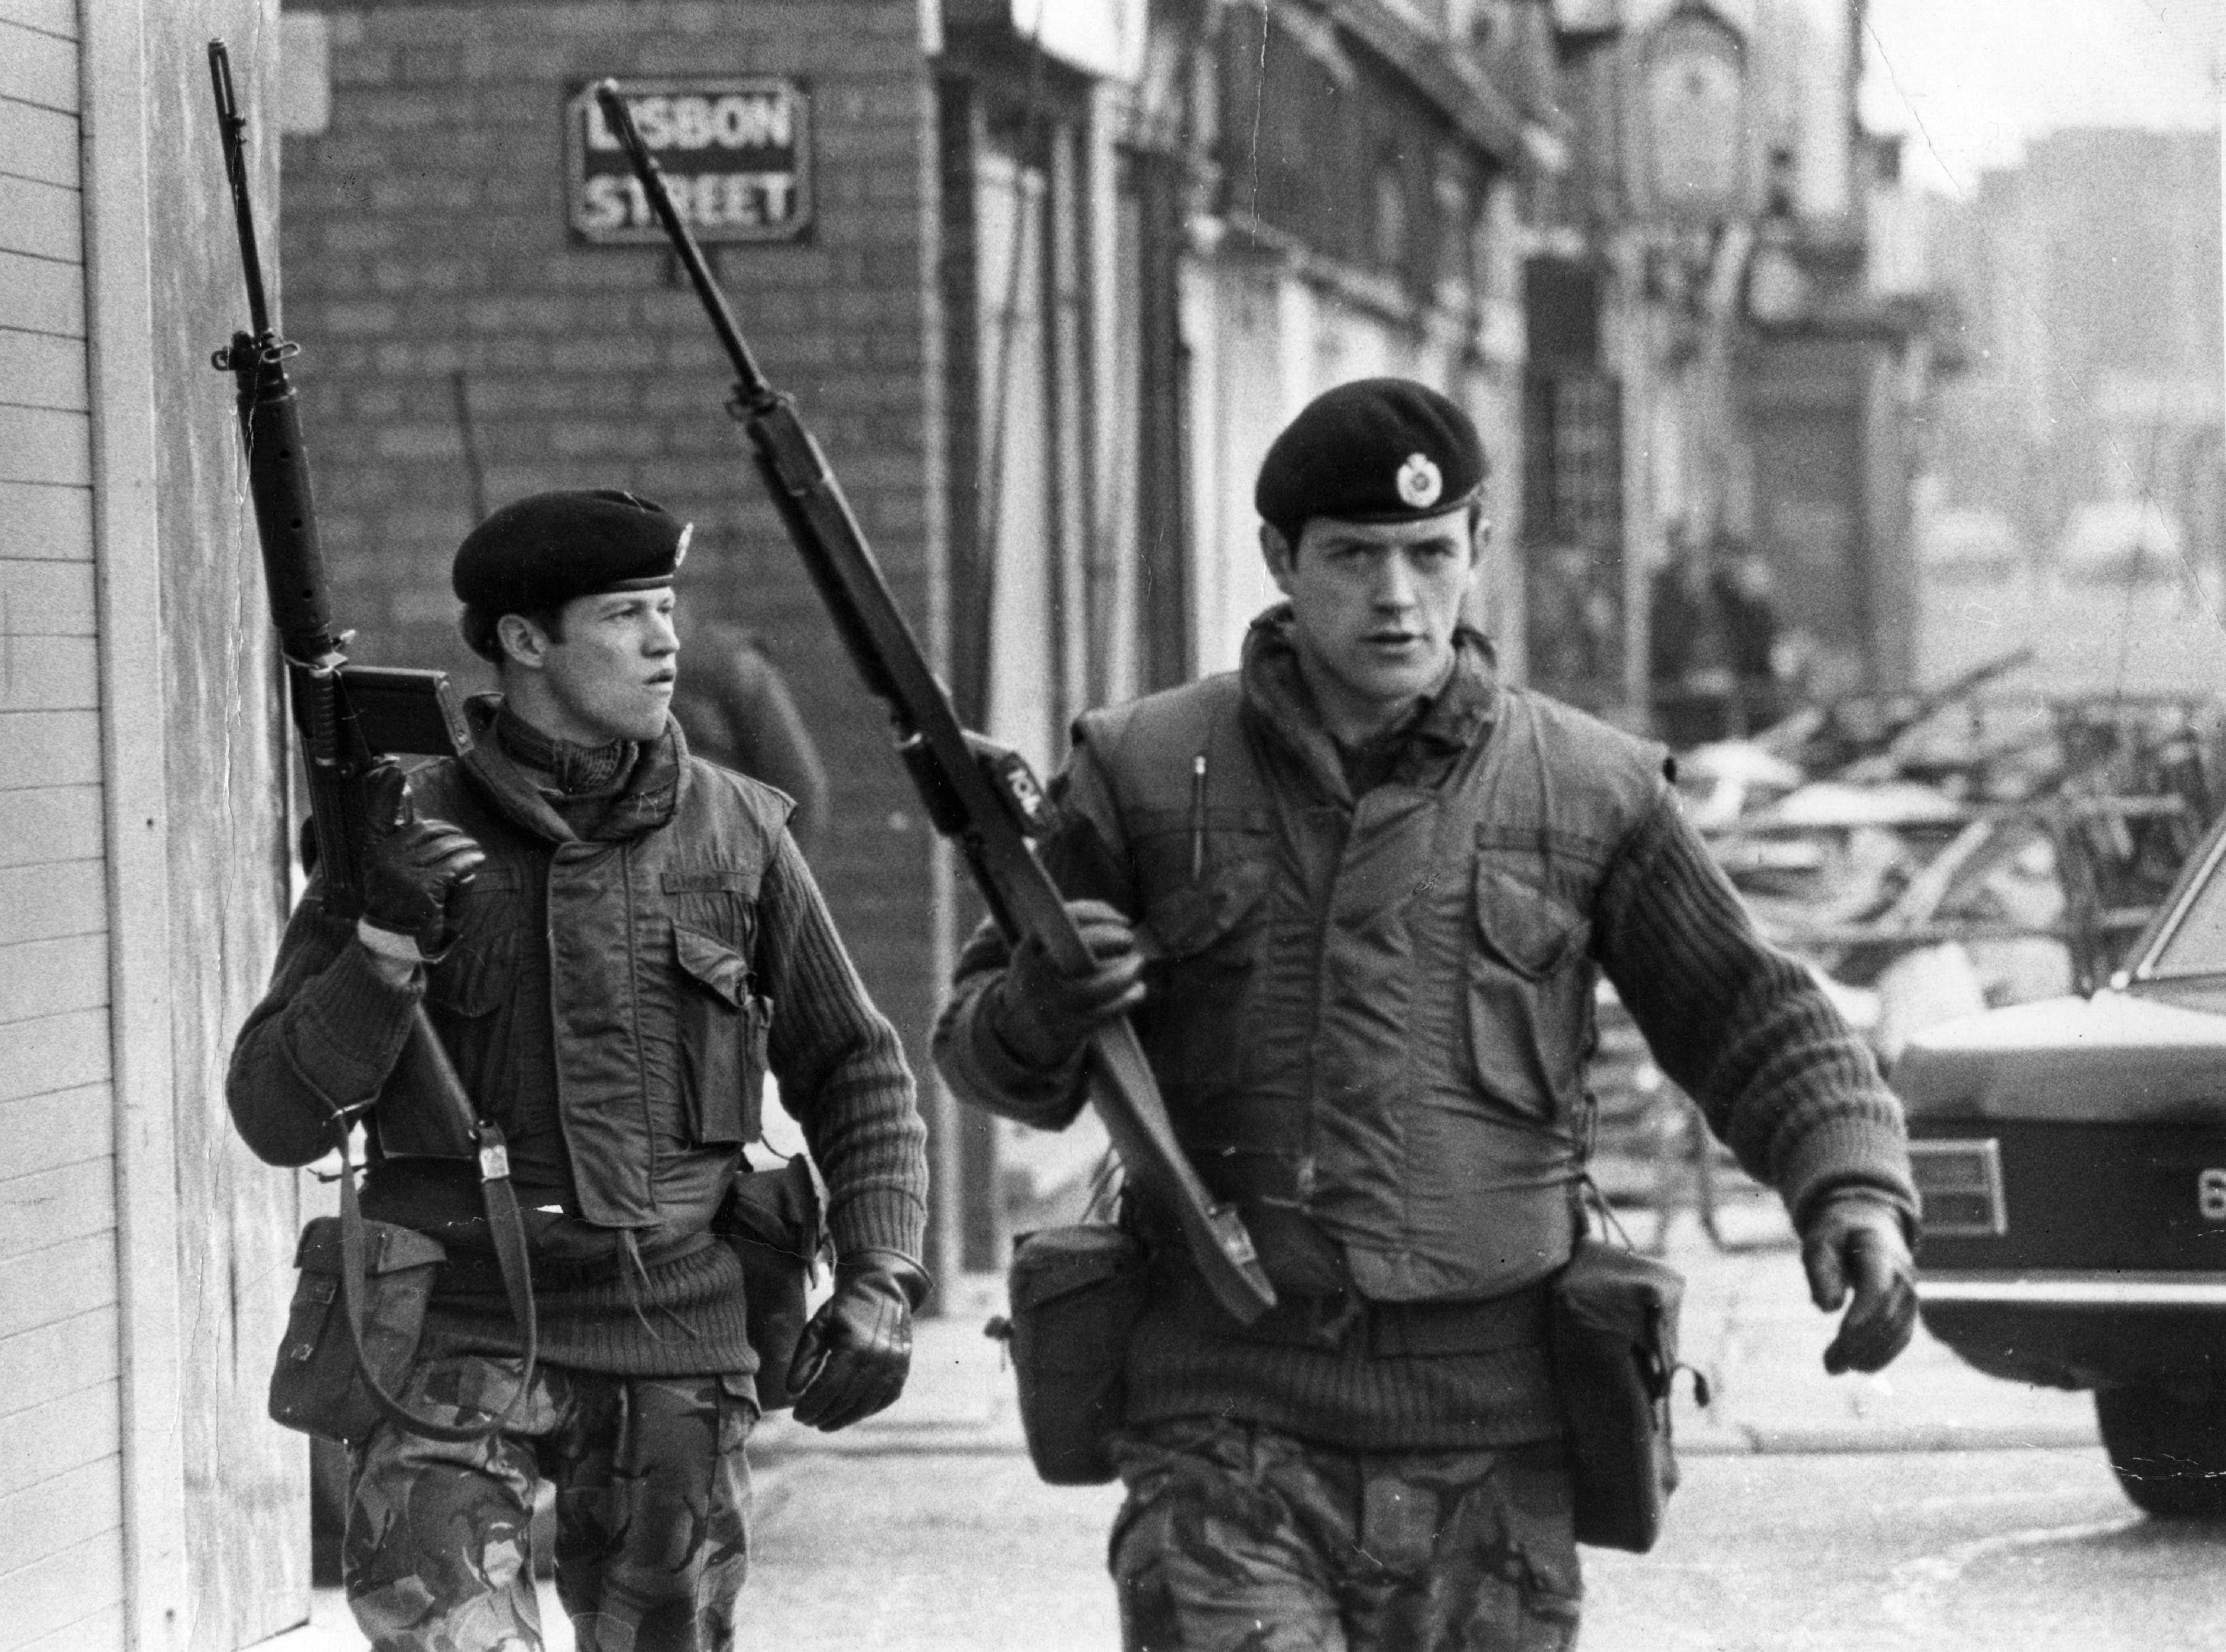 Soldier turned MP starts petition urging time limit on prosecutions for Troubles veterans